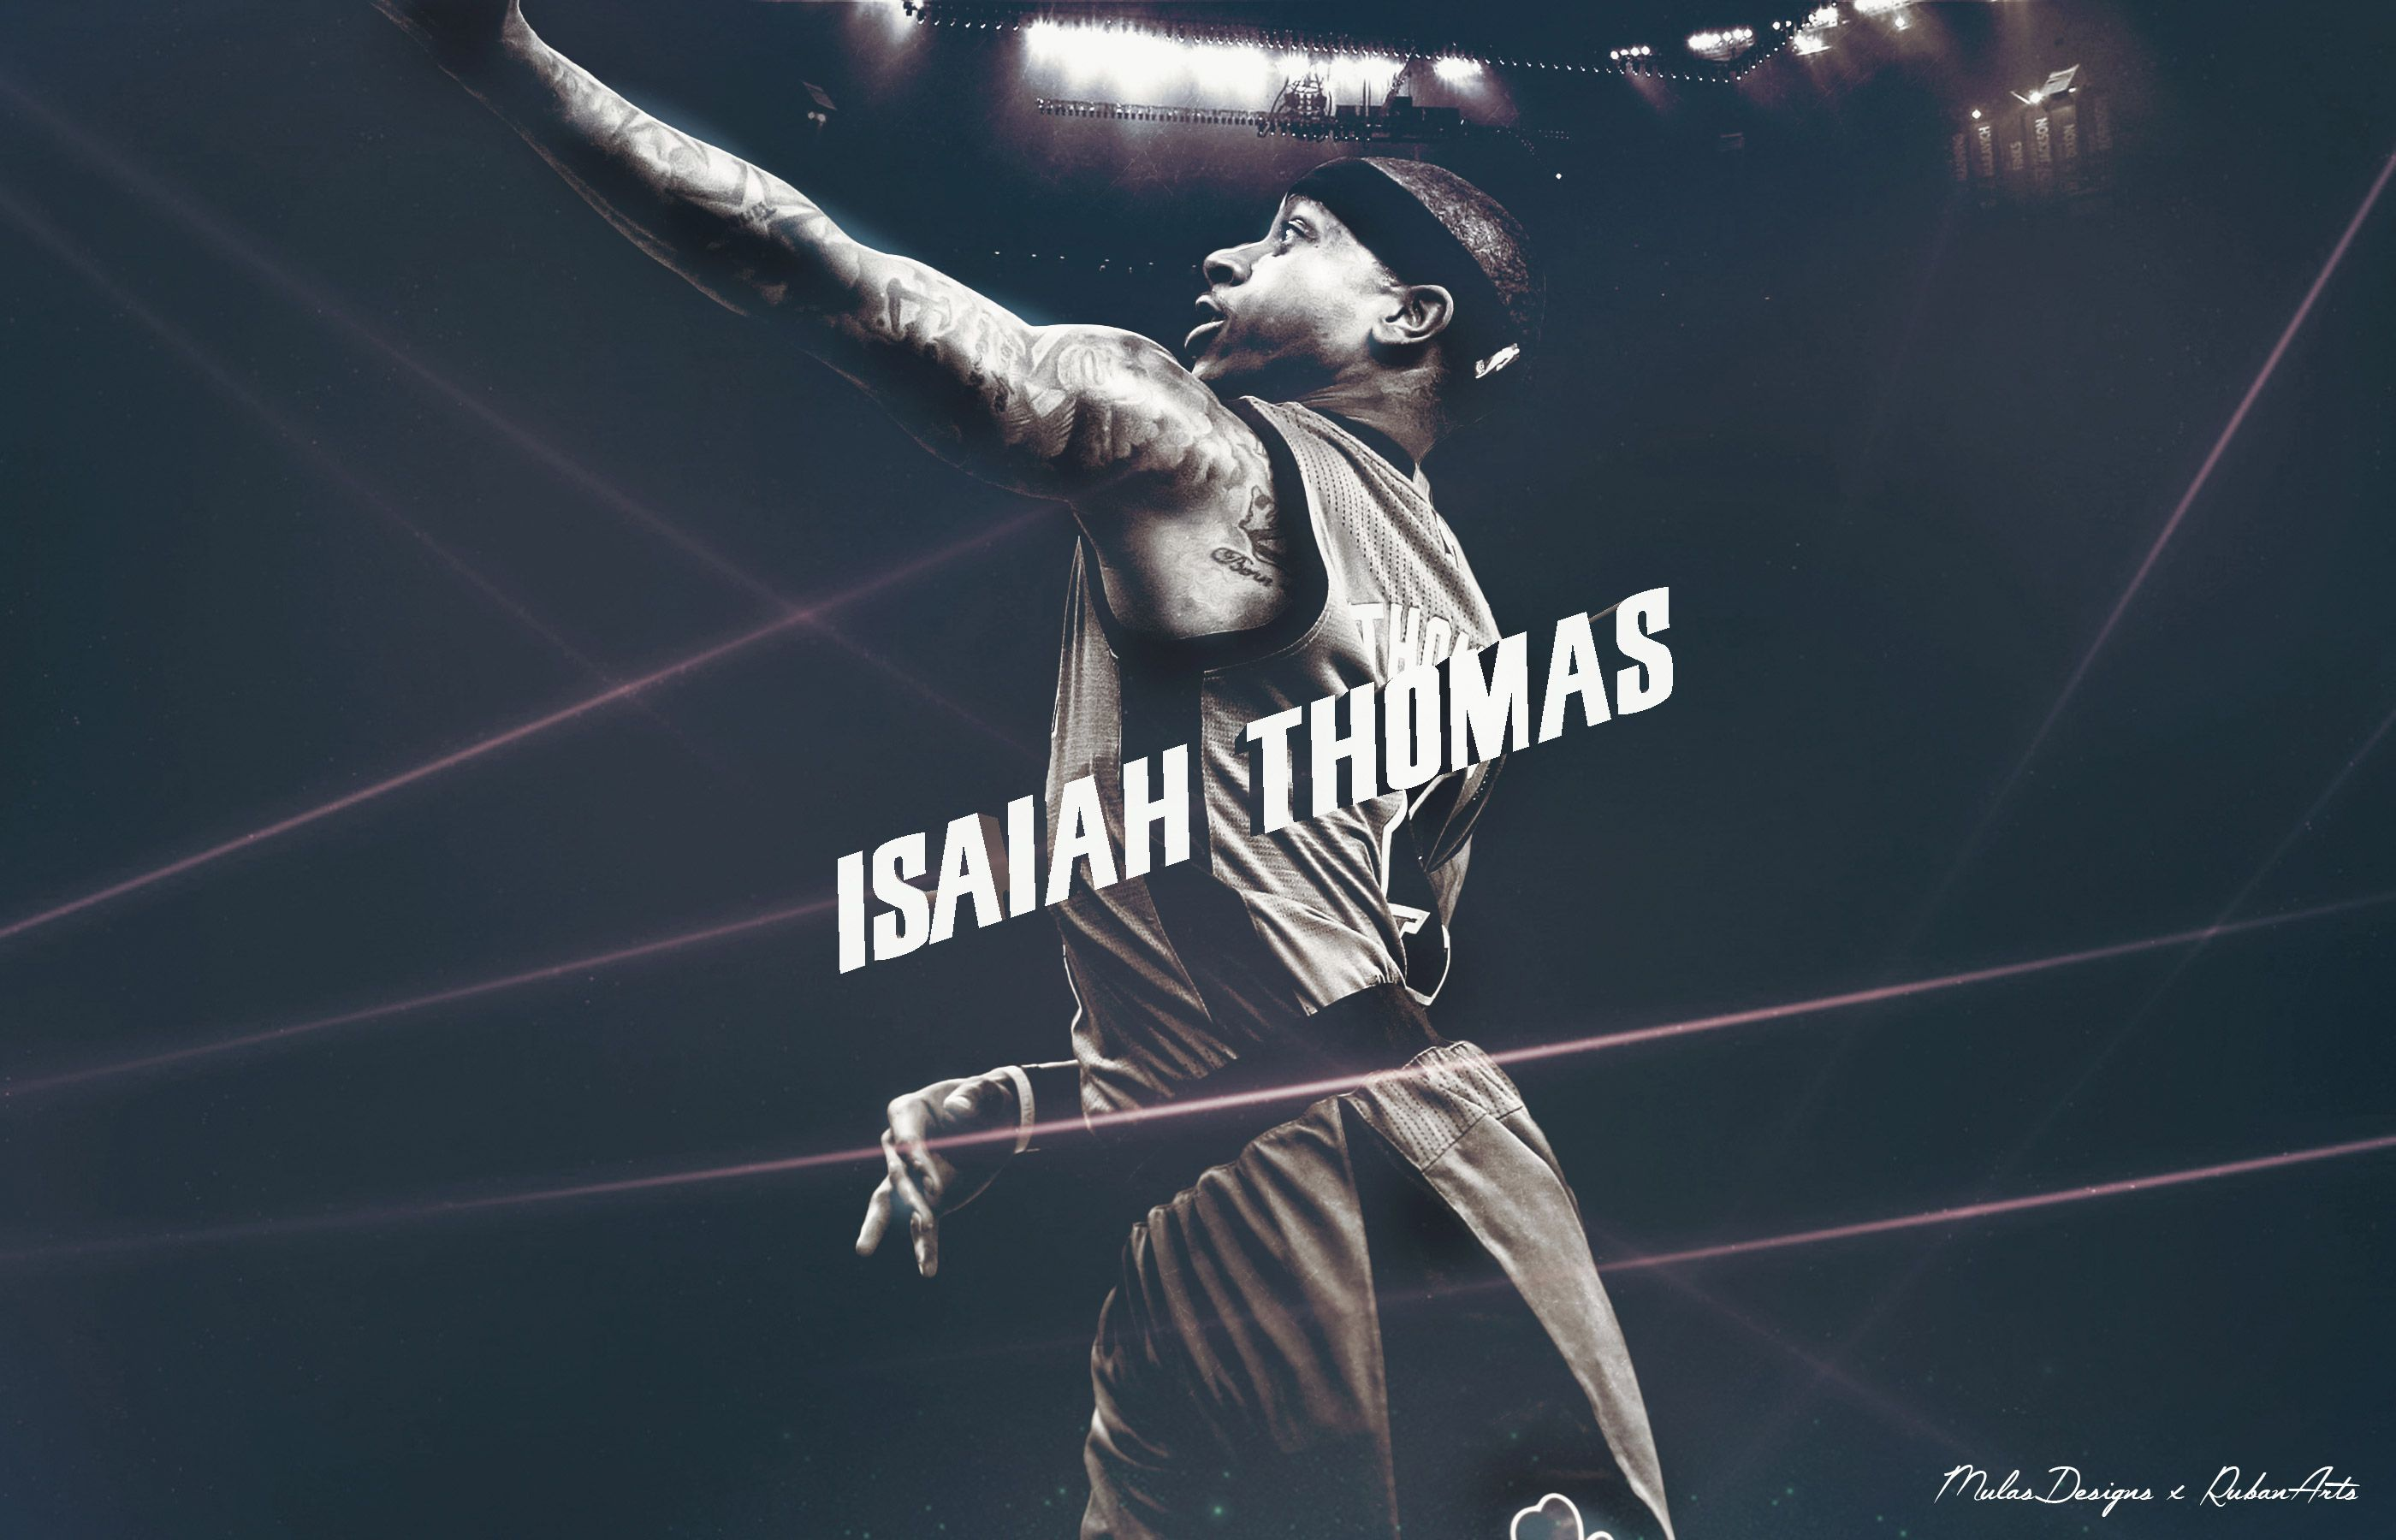 Isaiah Thomas Dunk In Game Isaiah thomas, Best wallpaper